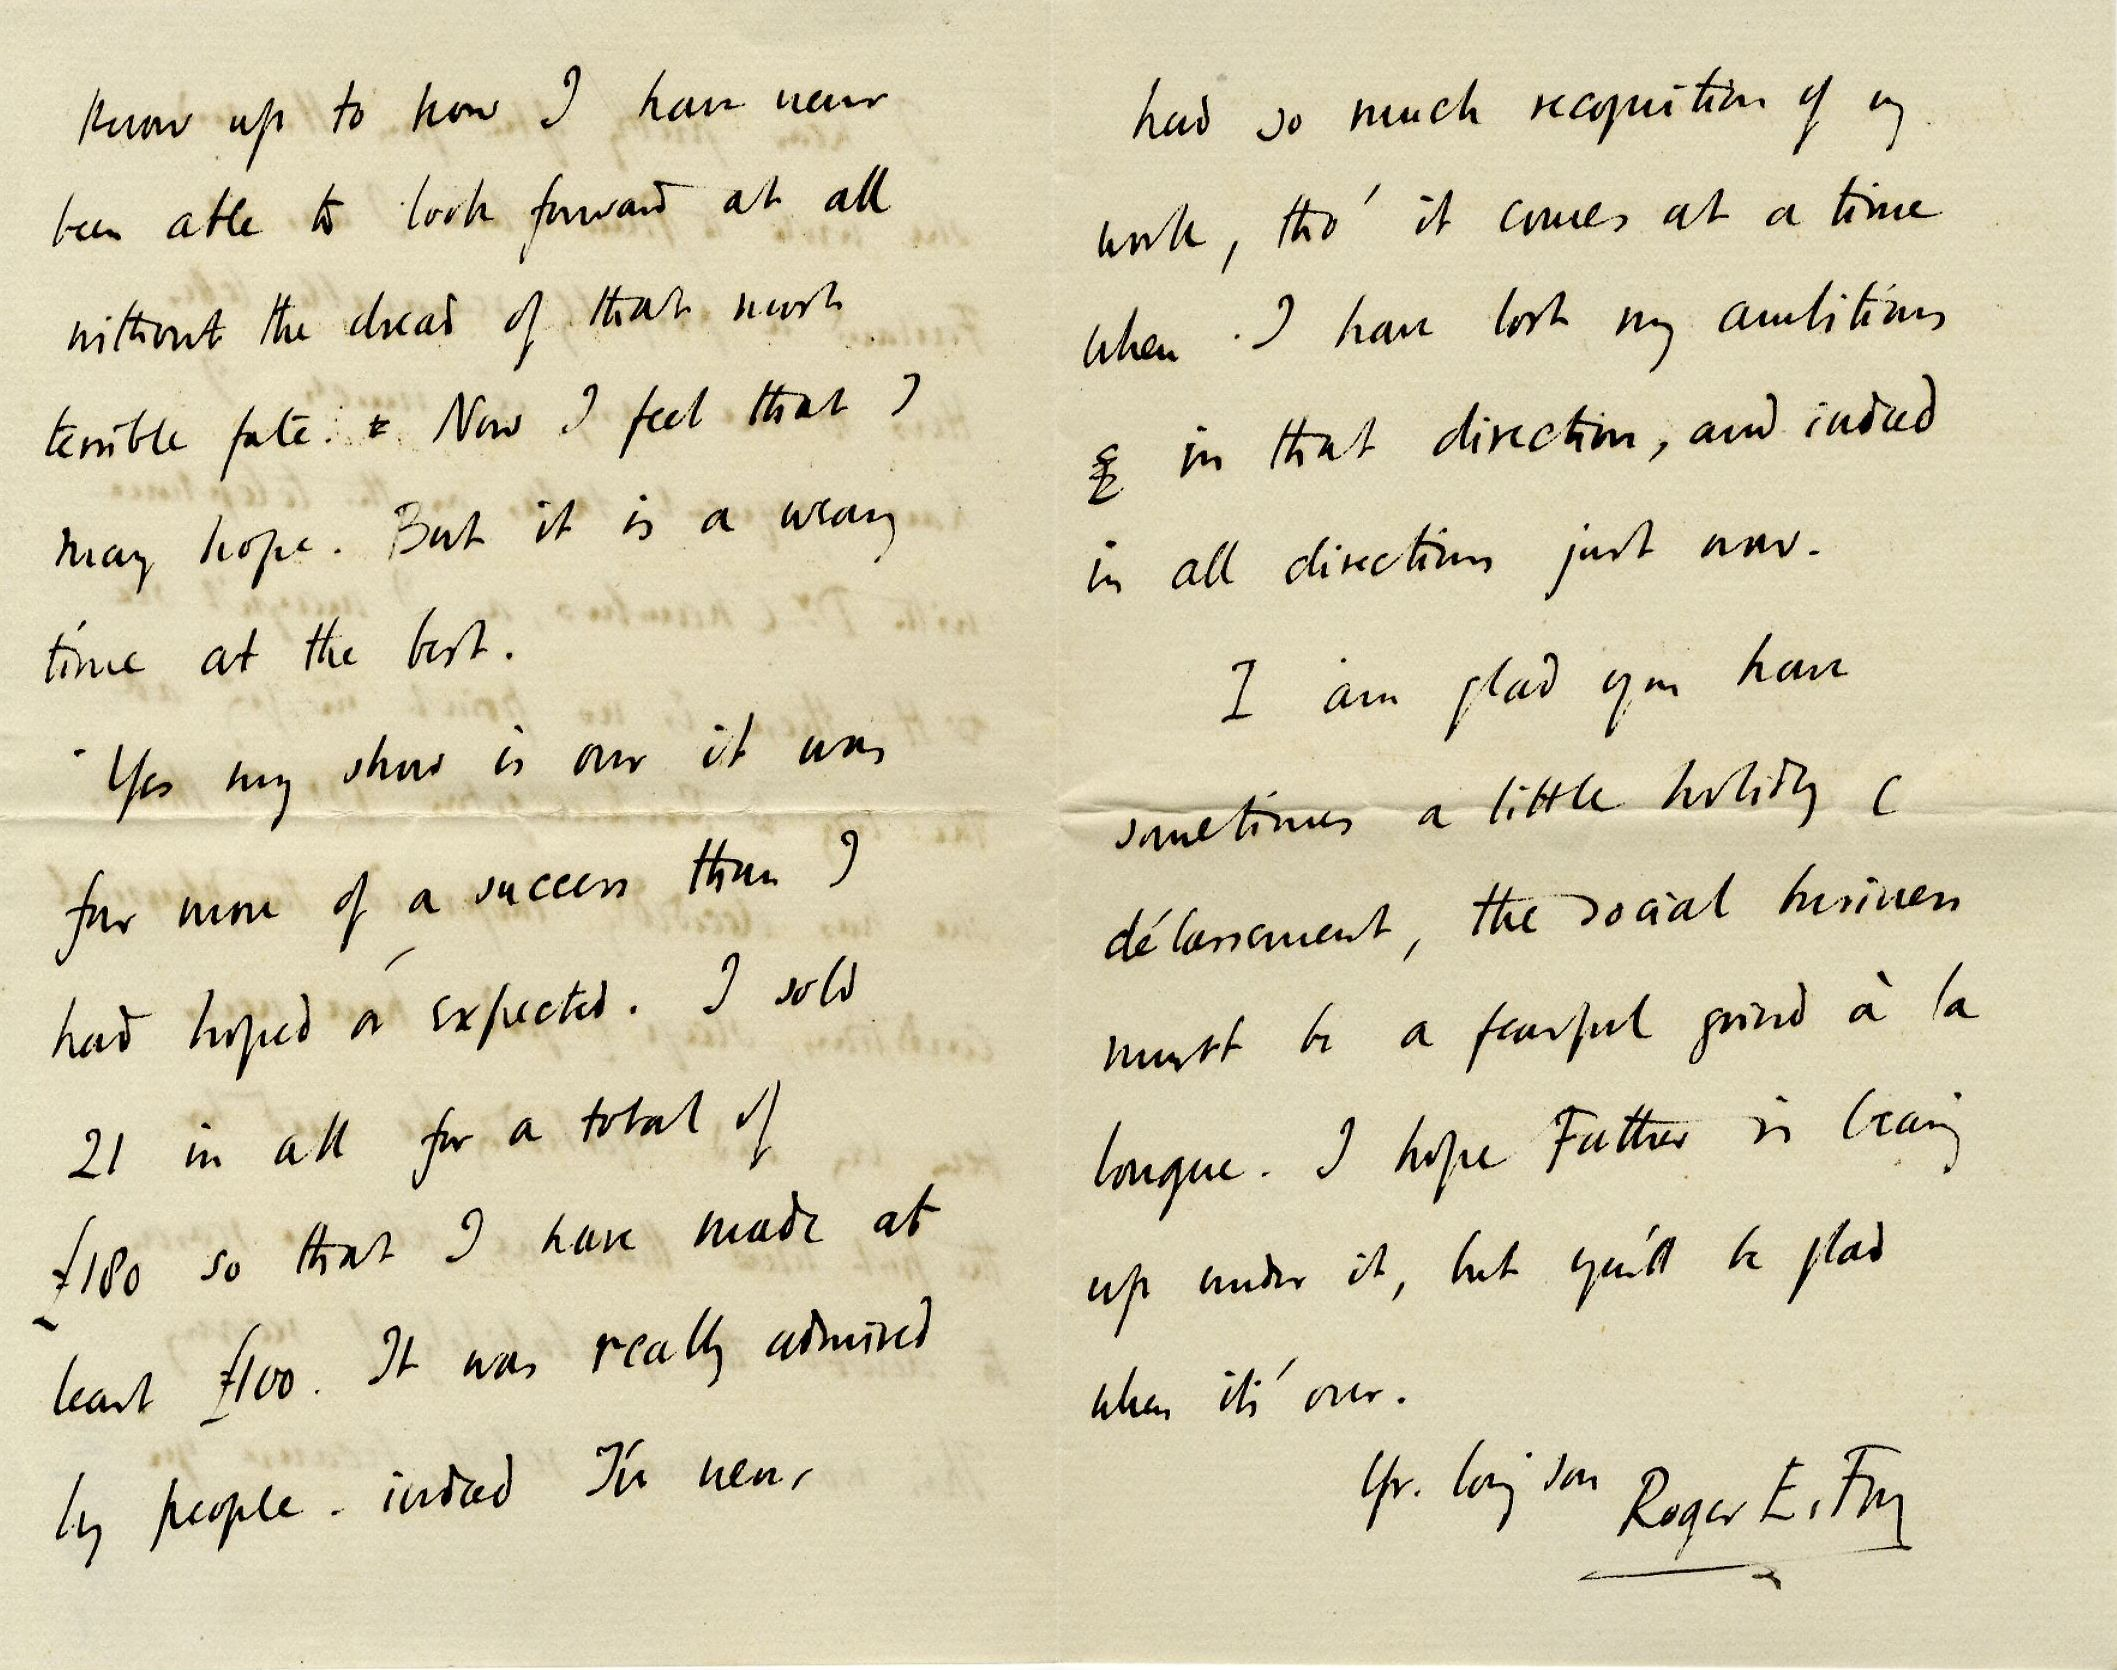 Letter from Roger Fry to Lady Fry, 6 August 1907, concerning his title being changed to European Advisor and his increased recognition as an artist being unmatched by his enthusiasm. [REF/3/57/35]